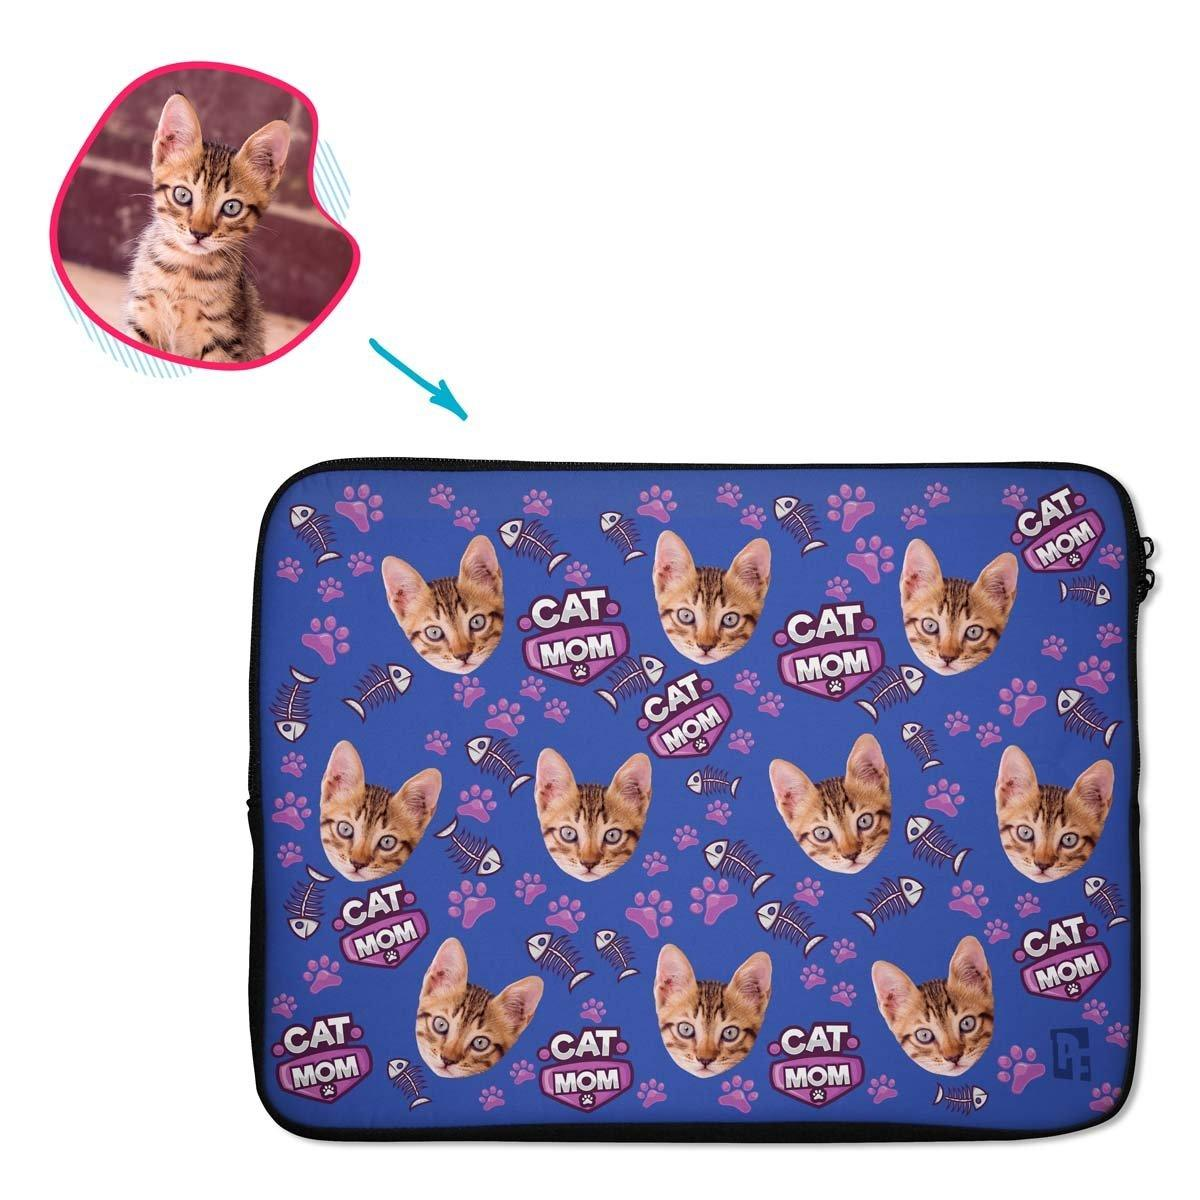 darkblue Cat Mom laptop sleeve personalized with photo of face printed on them